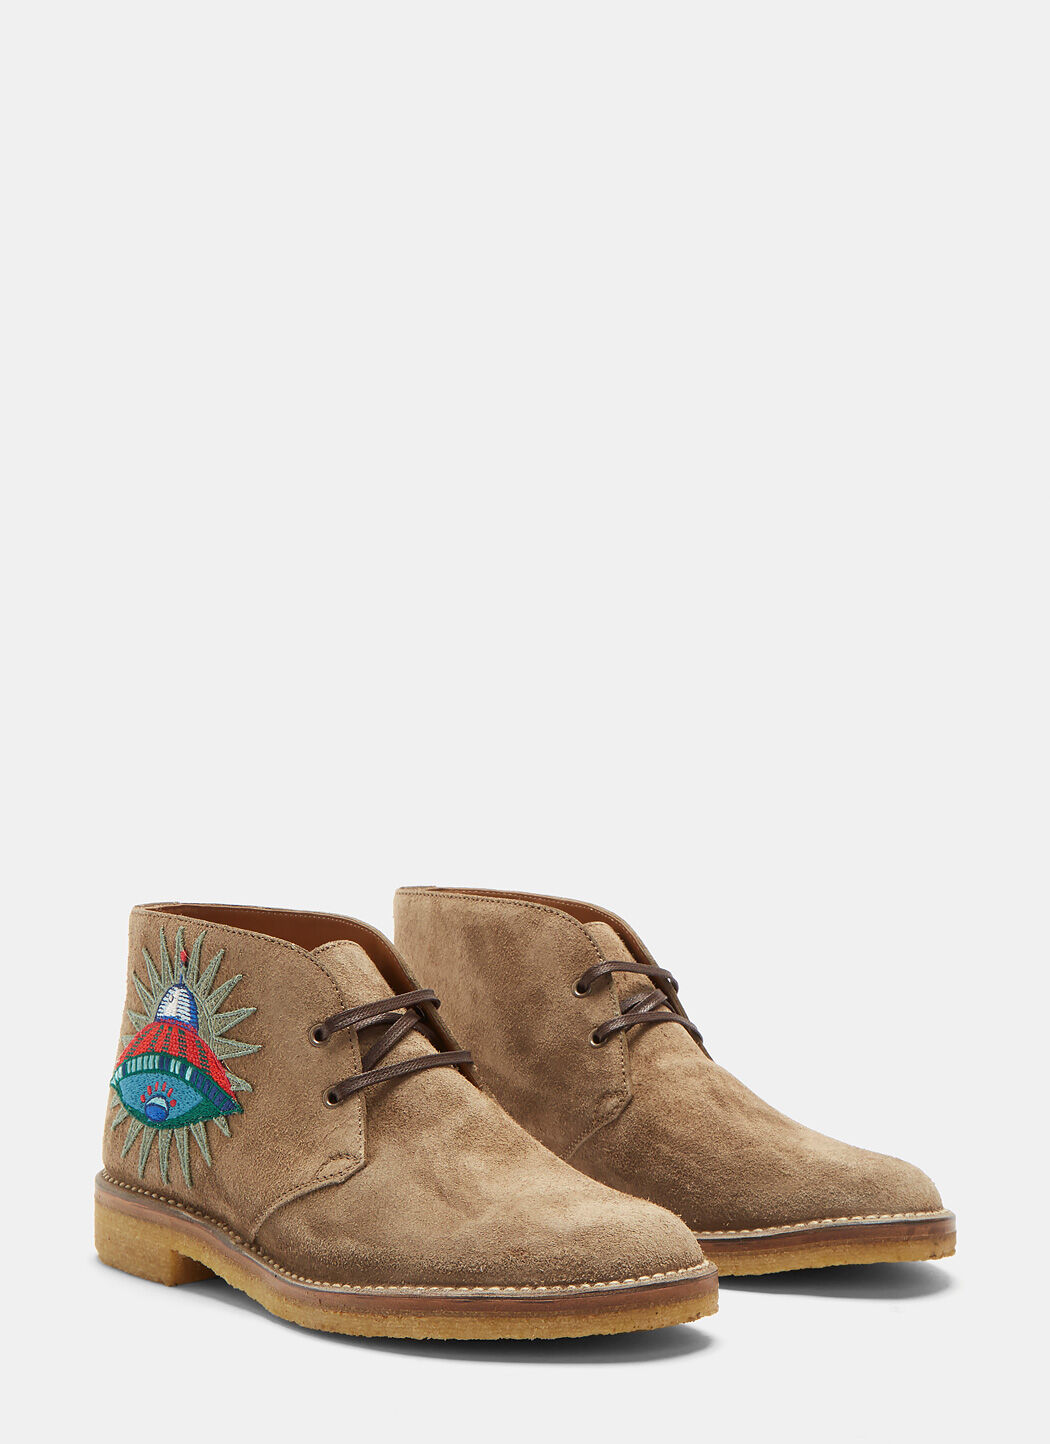 GUCCI Suede Embroidered Appliqué Ankle Boots In Beige in Colour: Camel-Brown